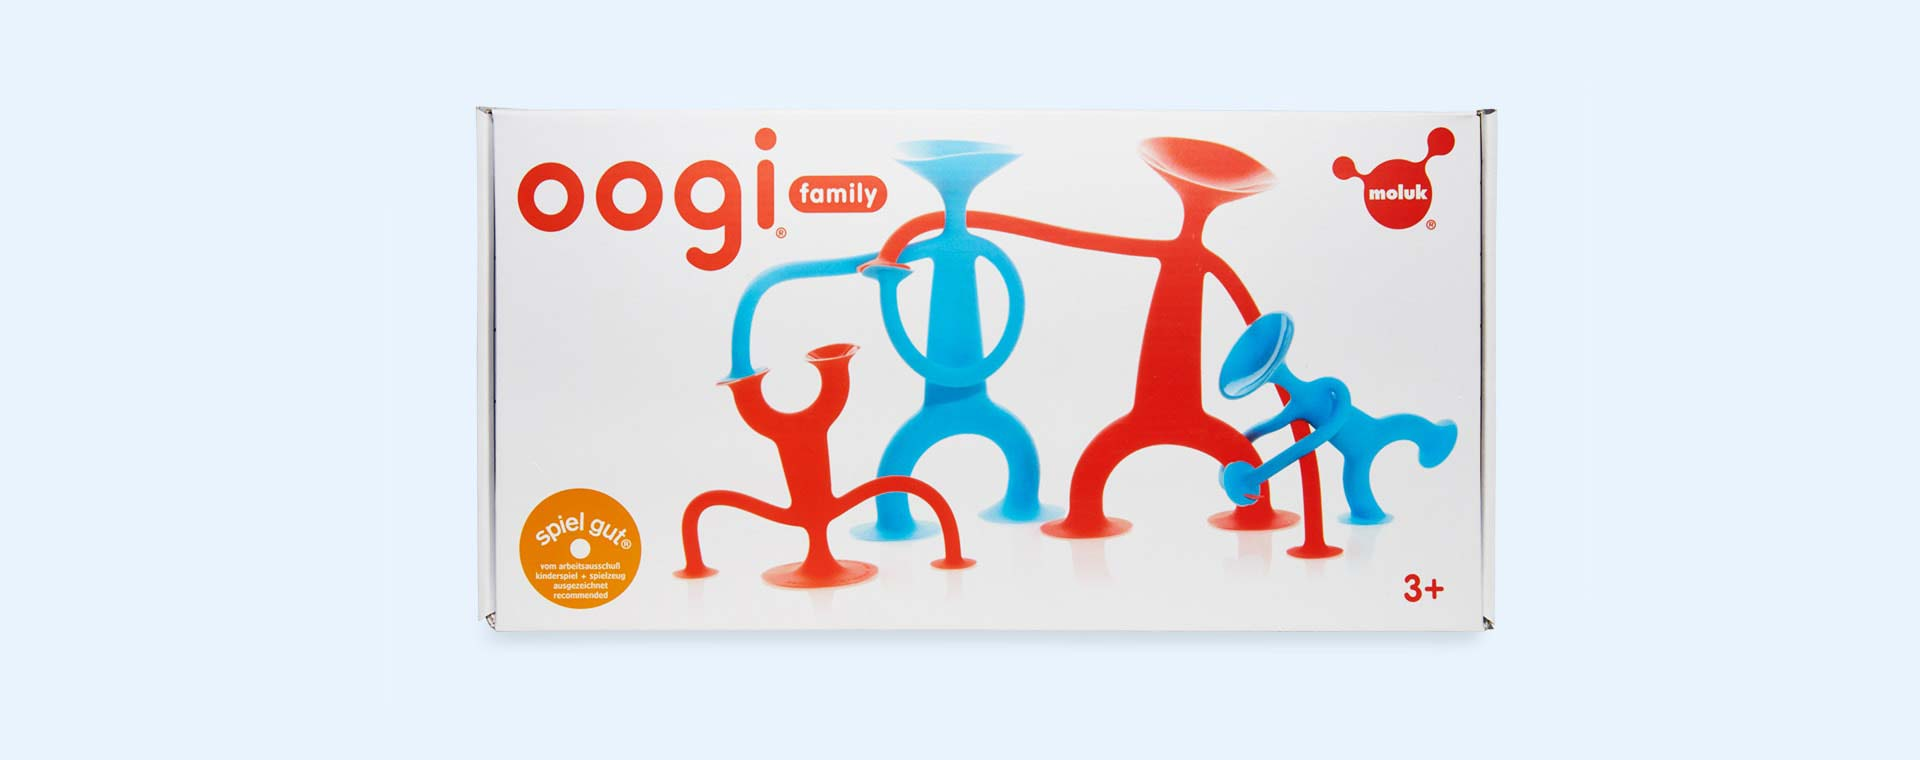 Multi Moluk OOgi Family